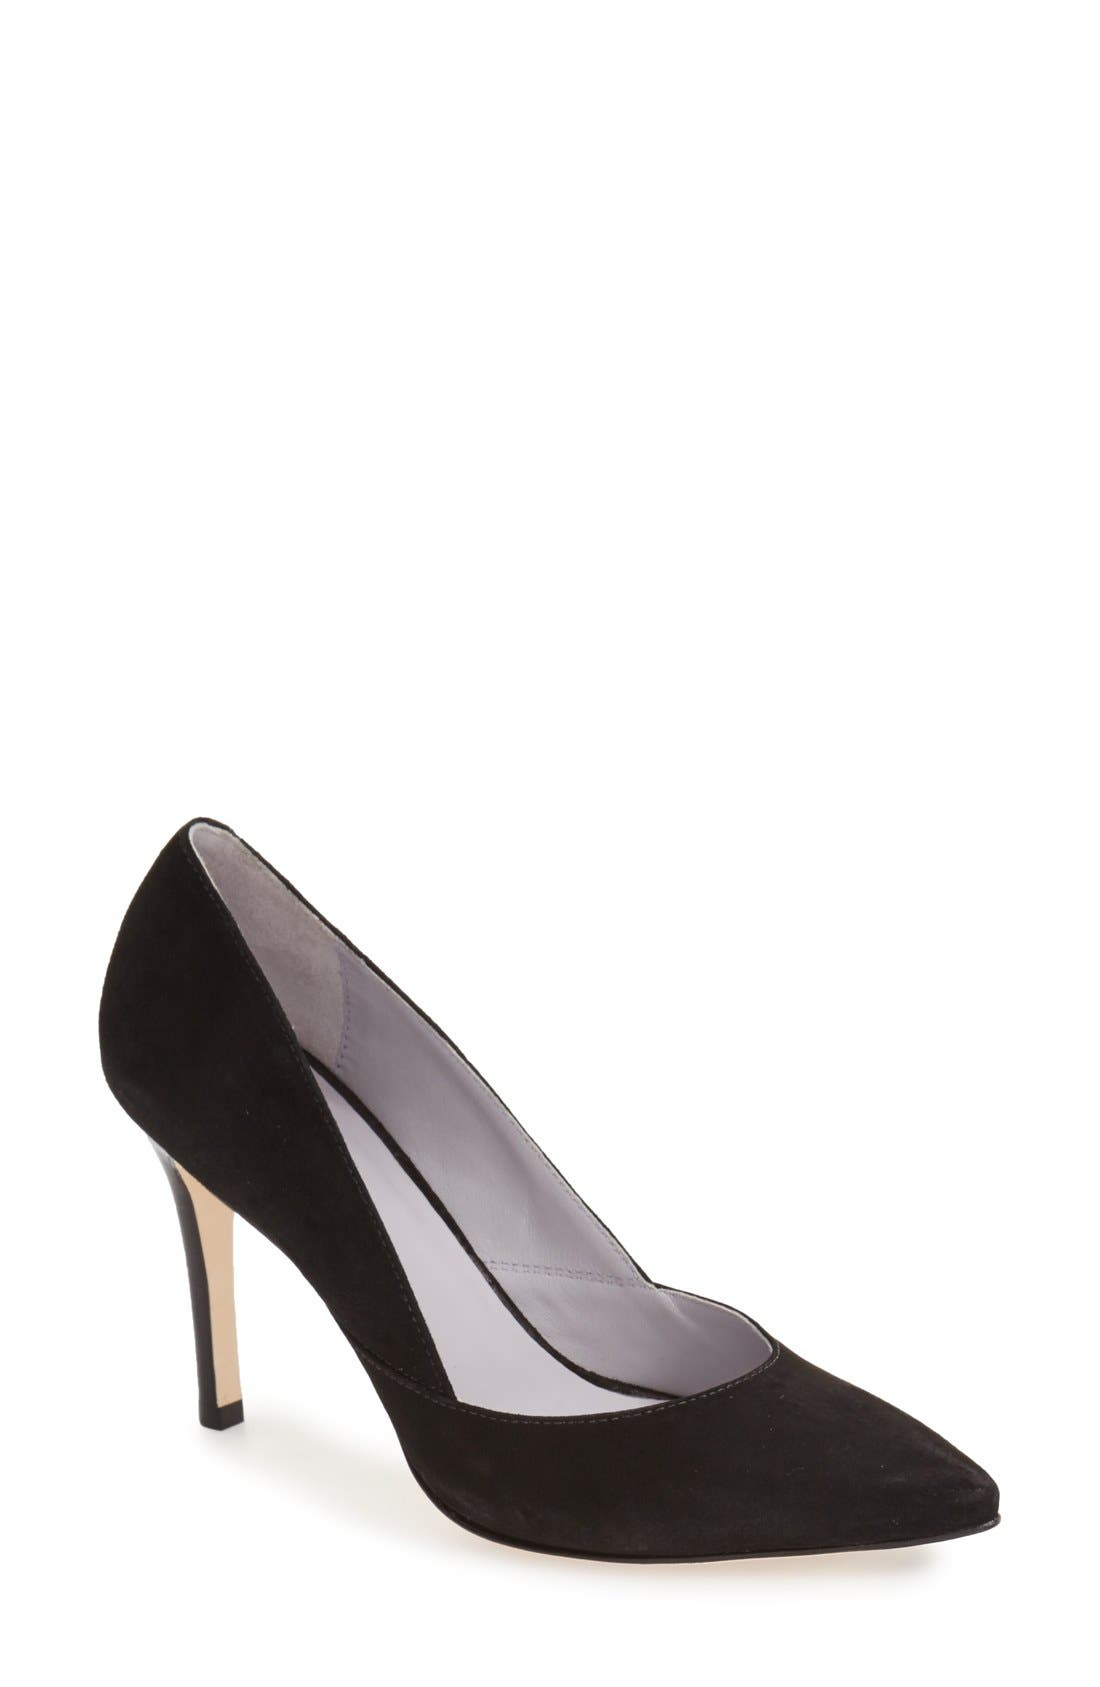 'Vanessa' Pointy Toe Leather Pump,                         Main,                         color,